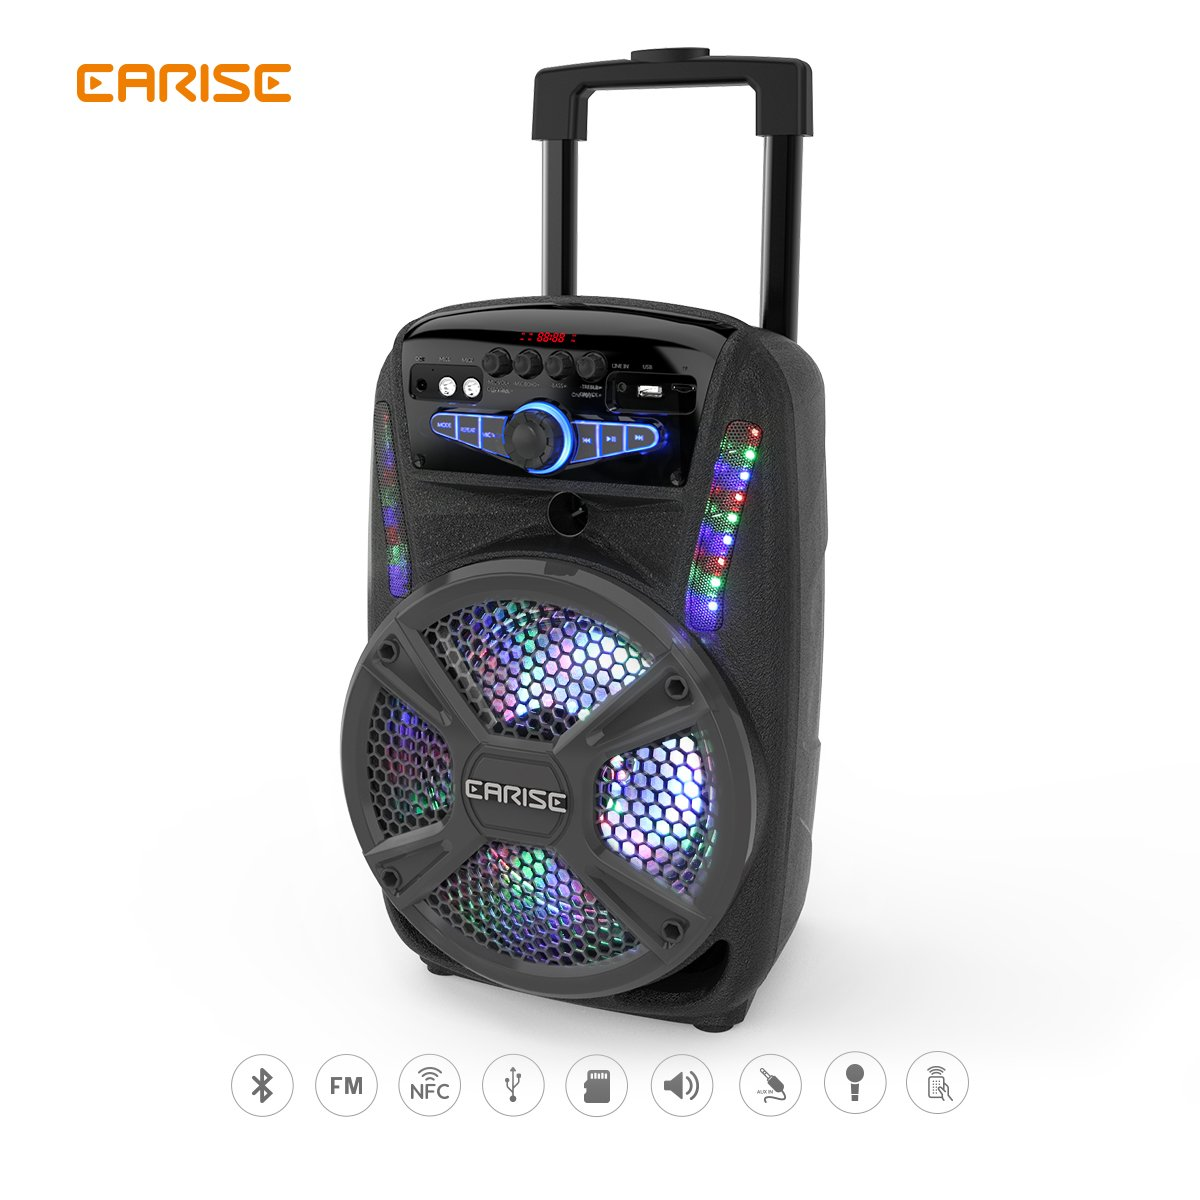 """EARISE V15-D/V16-D Audio Bluetooth PA System Portable Rechargeable Speaker with Wireless Microphone, Remote Control, FM Radio, AUX/TF/USB/NFC, Trolley Design 8"""" /12"""" (V16-D)"""